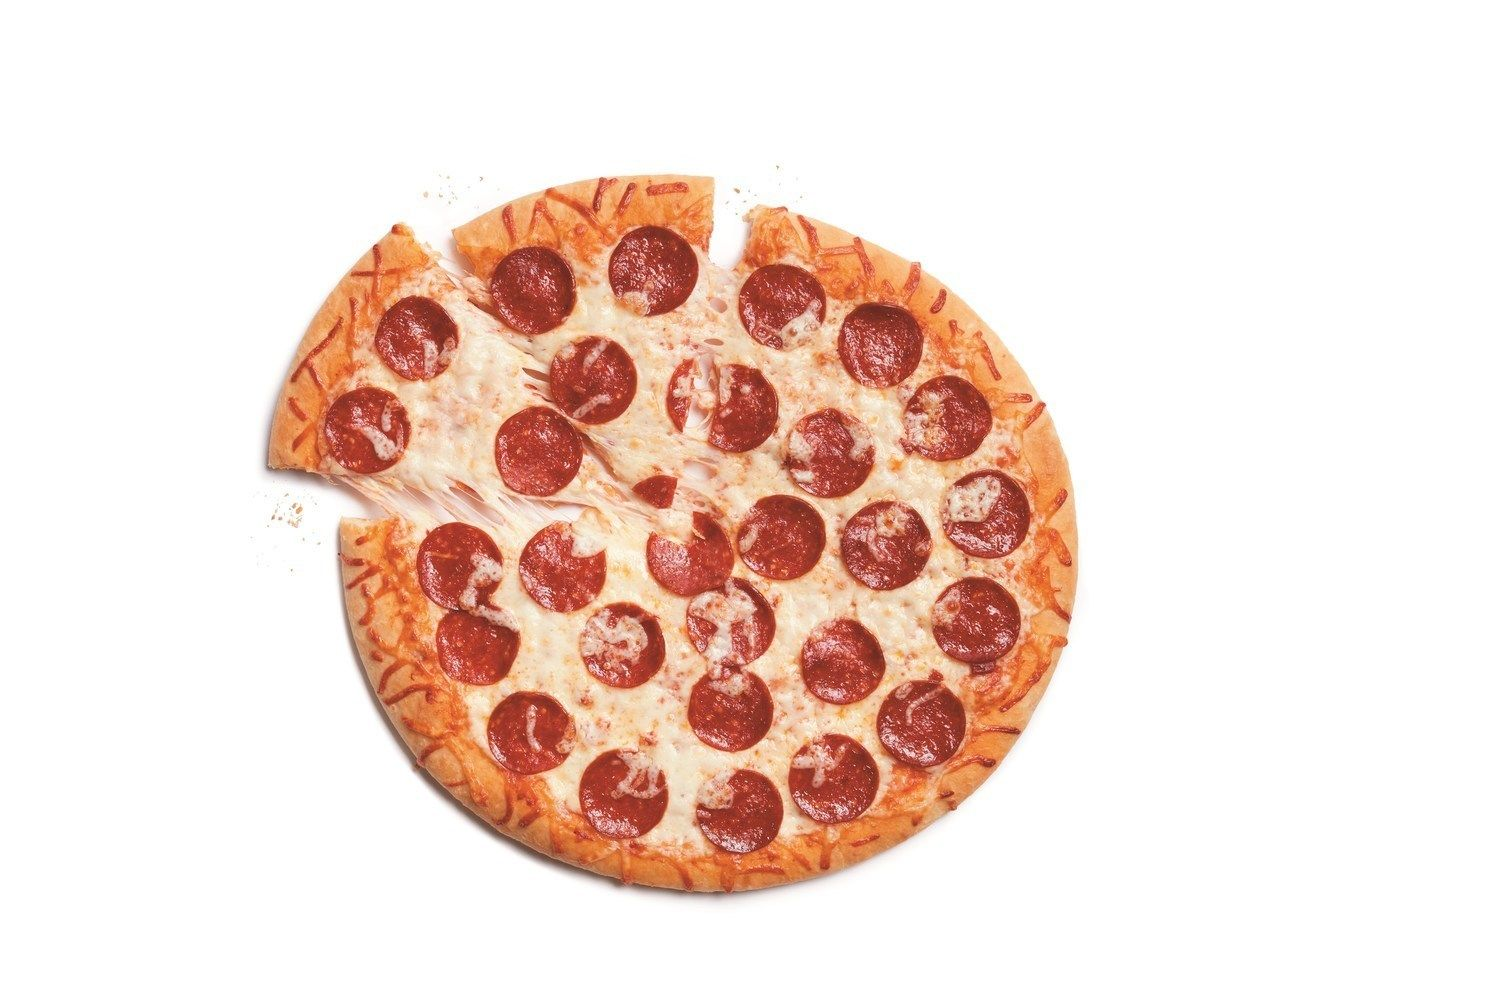 7 Eleven Is Selling Whole Pizzas For 2 29 In Honor Of Leap Day